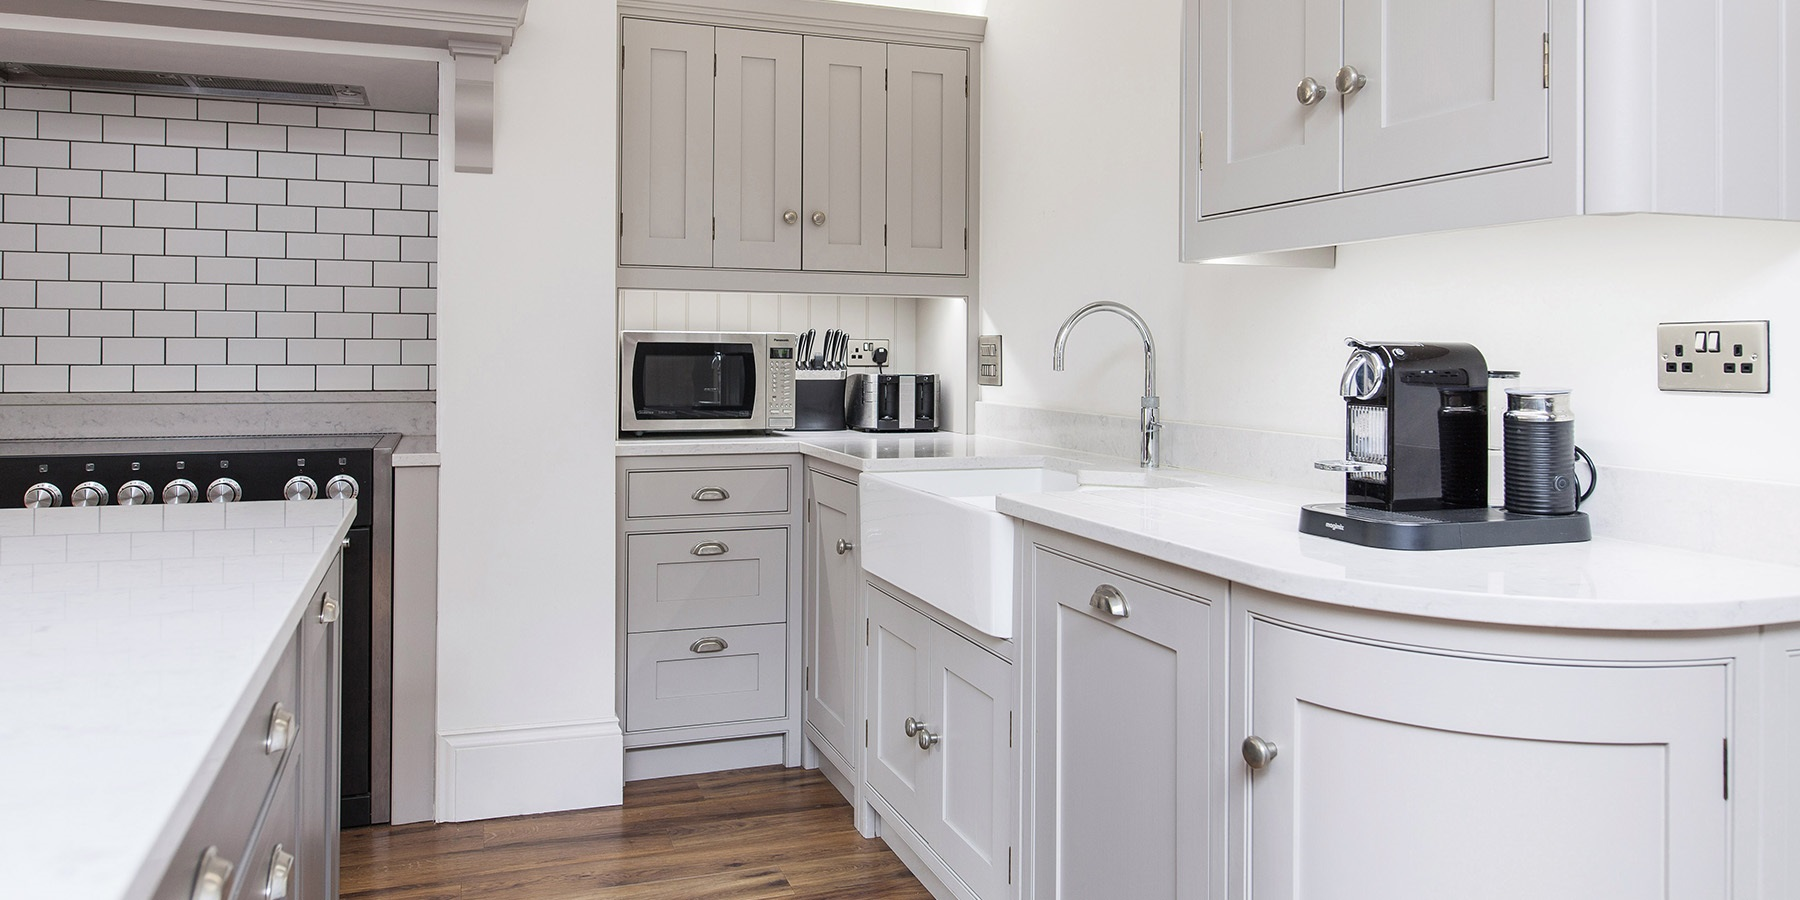 Burlanes | Bespoke, Handmade Country Kitchen - Combining traditional charm with the all the benefits of modern living, and bespoke designed and handmade to your exact specifications, our Wellsdown kitchen is both timeless and flexible.